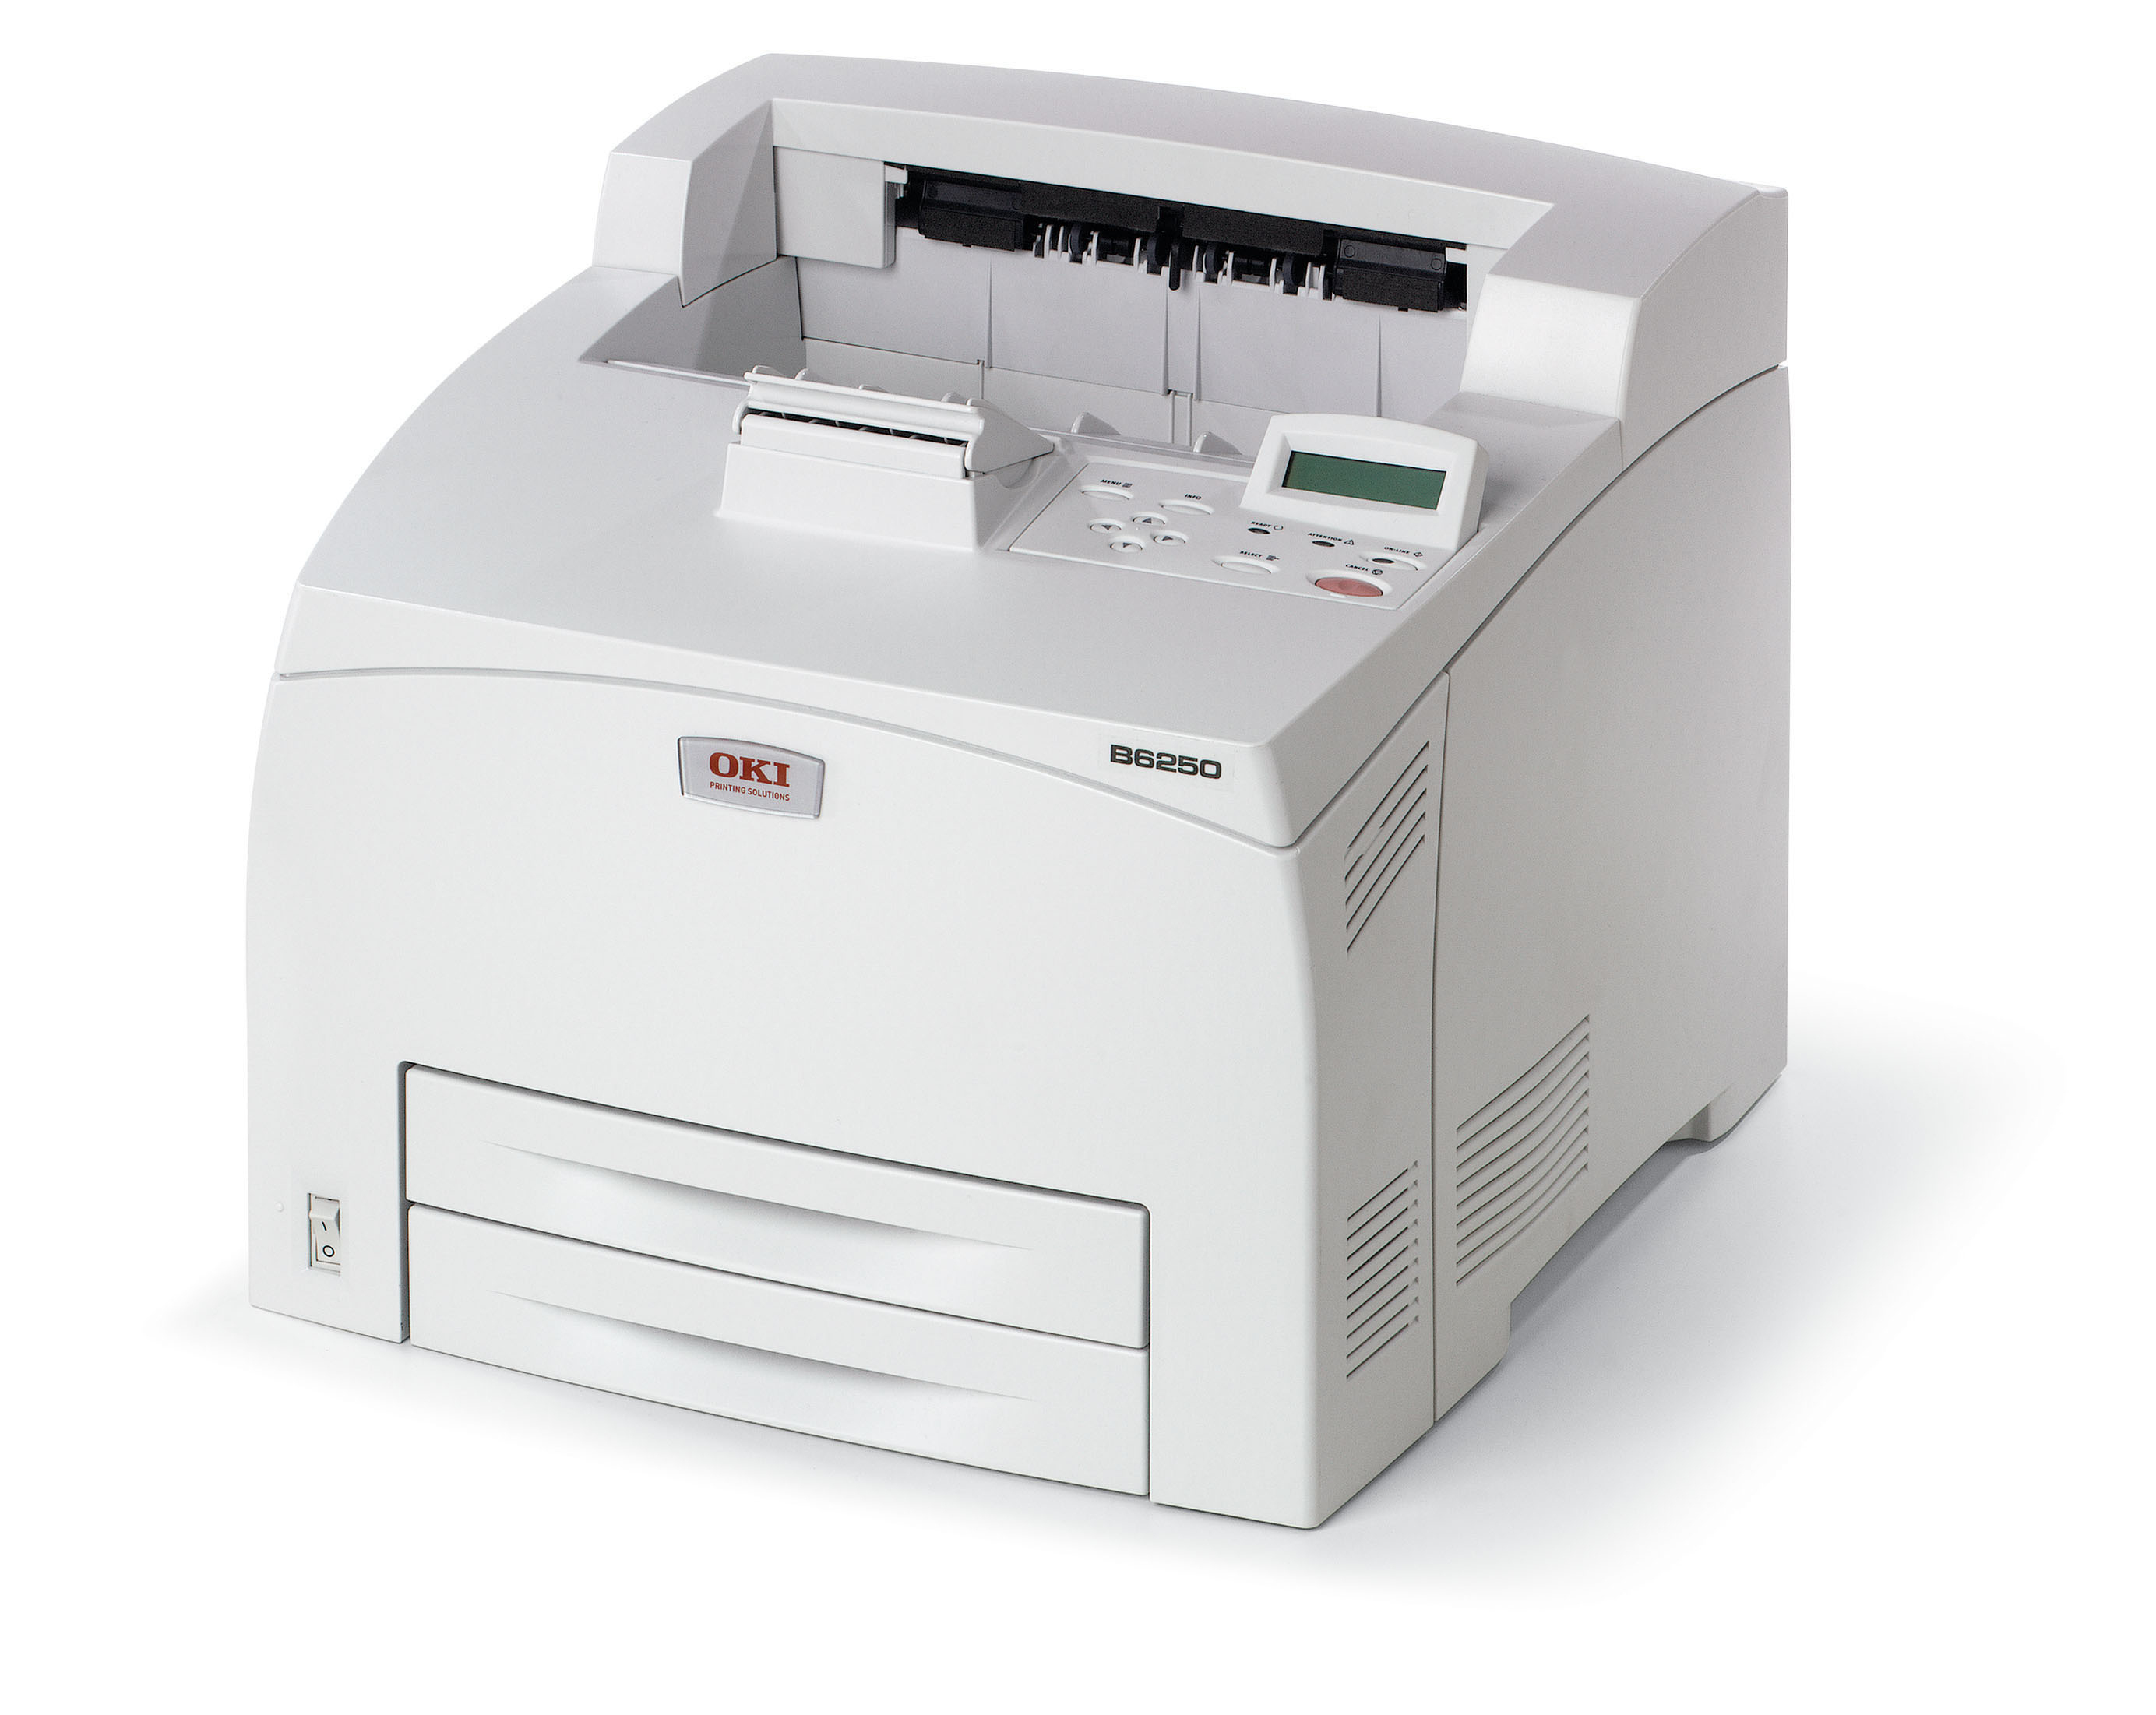 Oki B6250DN Printer 01226201 - Refurbished